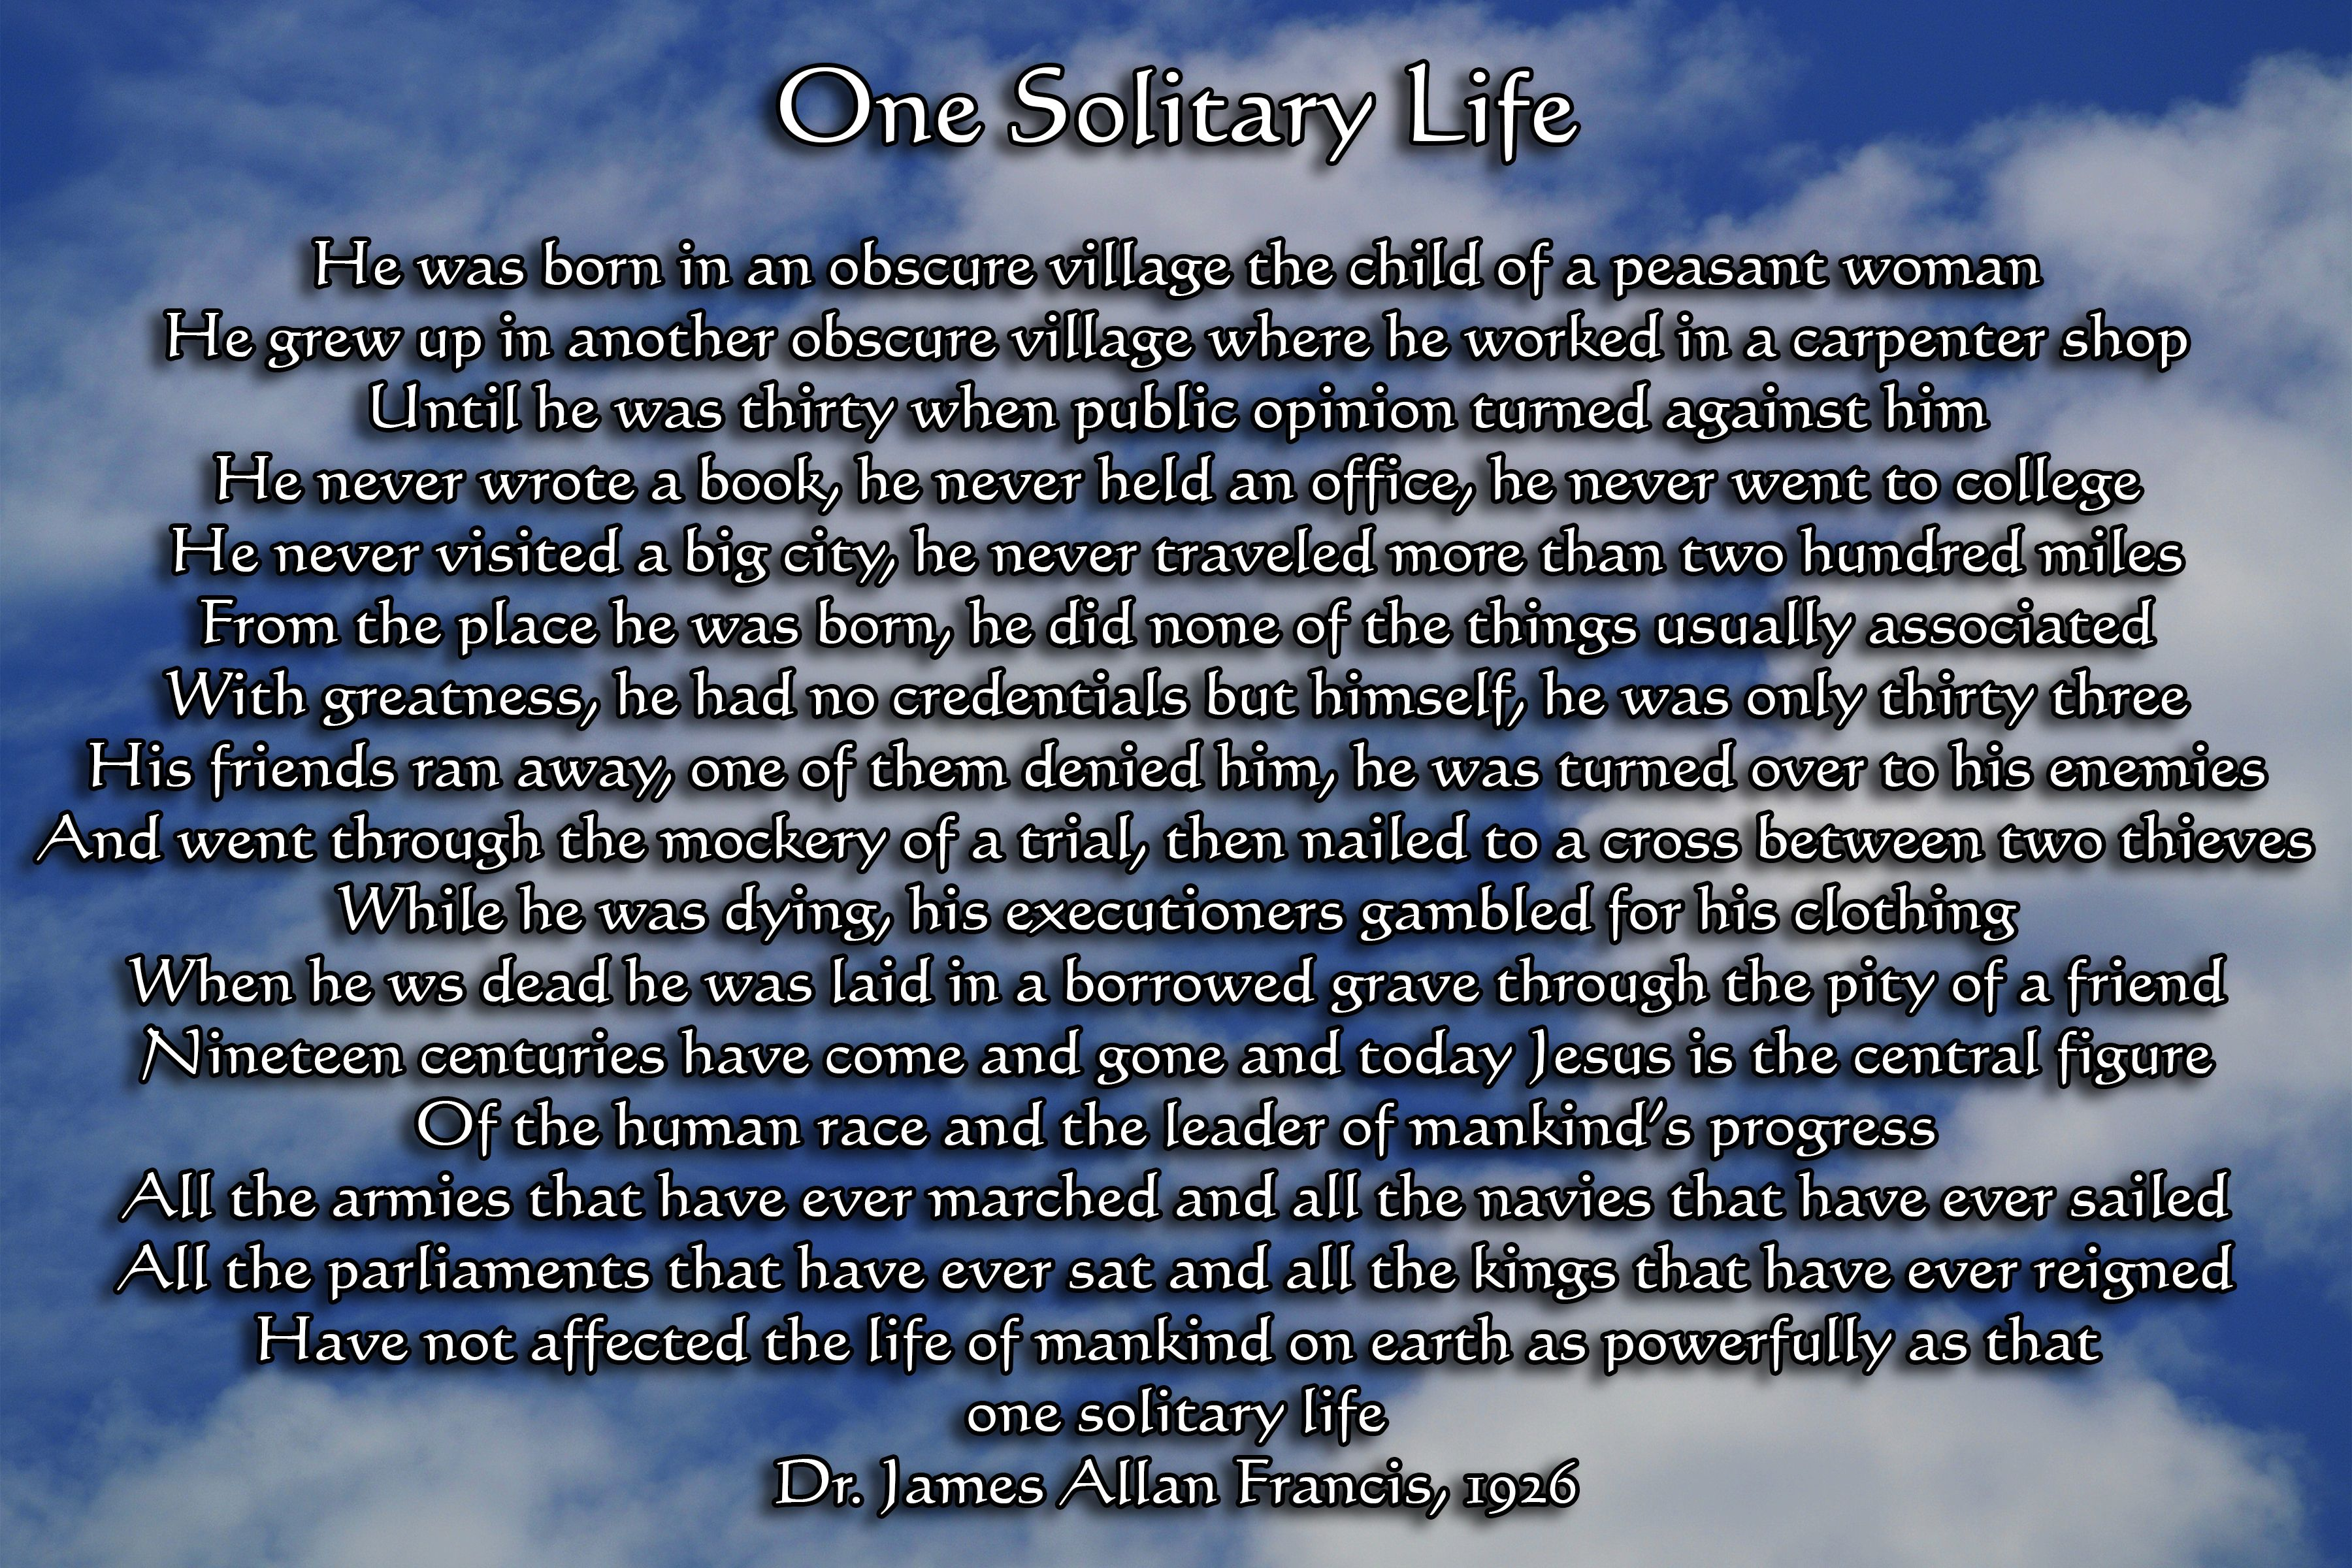 a solitary life is unfulfilling one When we try to sum up his influence, all the armies that ever marched, all the parliaments that ever sat, all the kings that ever reigned are absolutely picayune in their influence on mankind compared with that of this one solitary life.